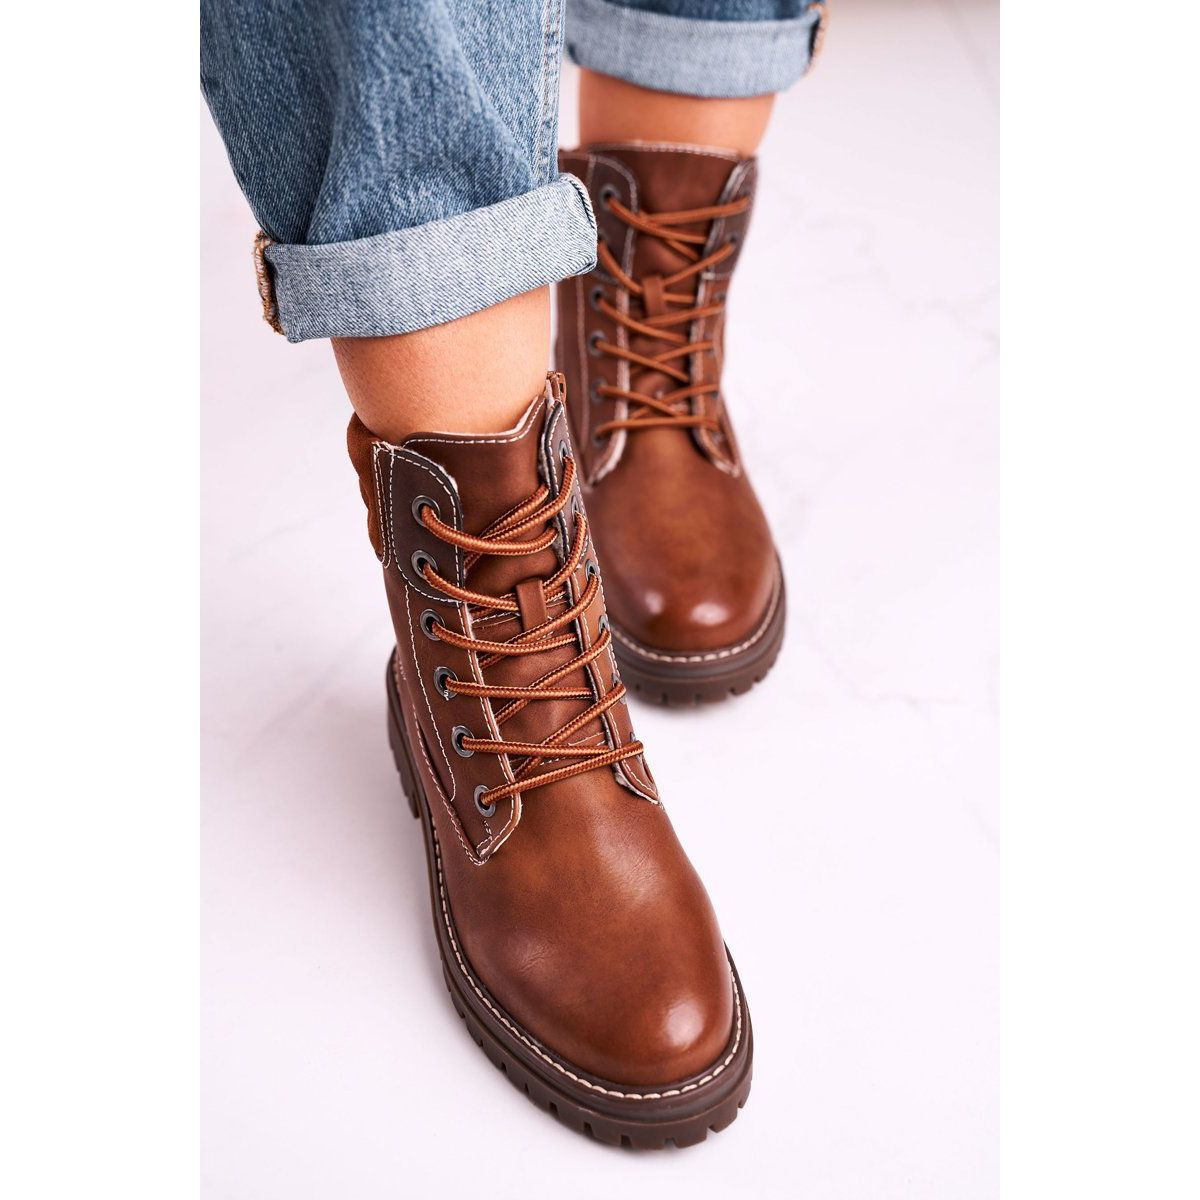 Damskie Ocieplane Workery Trapery Brazowe Timber Light Boots Combat Boots Hiking Boots